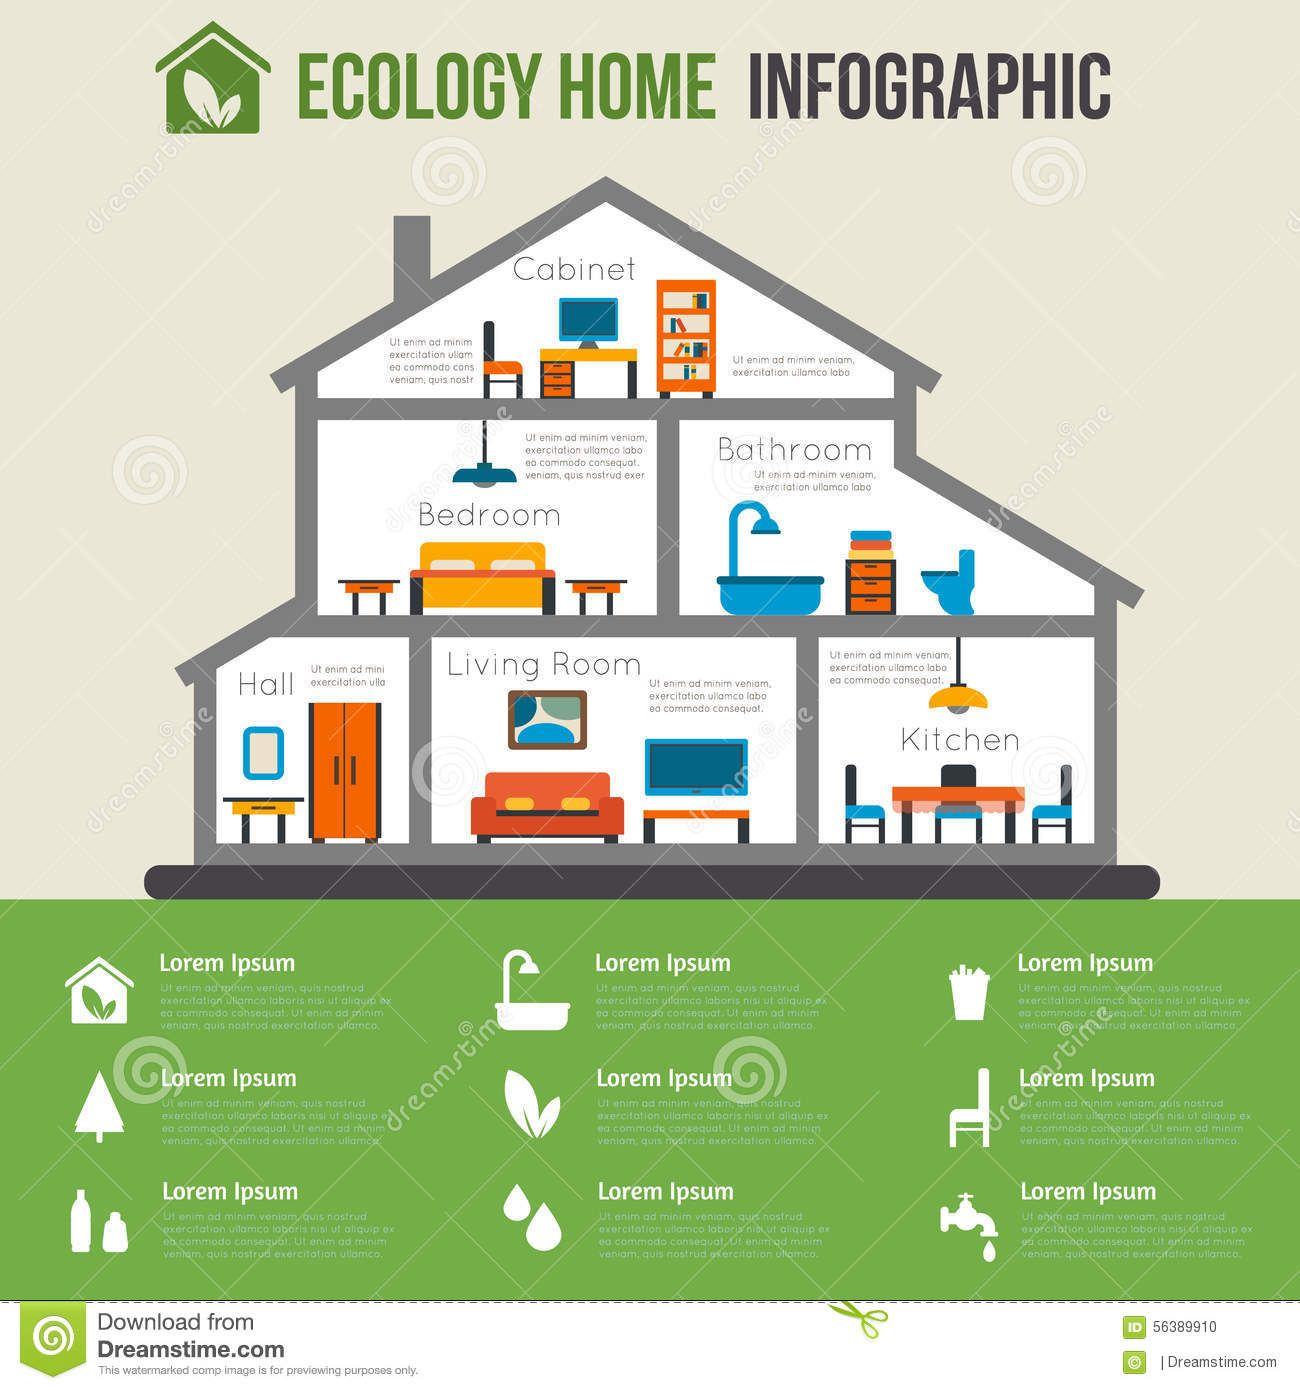 eco-friendly-home-infographic-ecology-green-house-house-cut-detailed-modern-house-interior-rooms-furniture-flat-style-56389910.jpg (1300×1390)